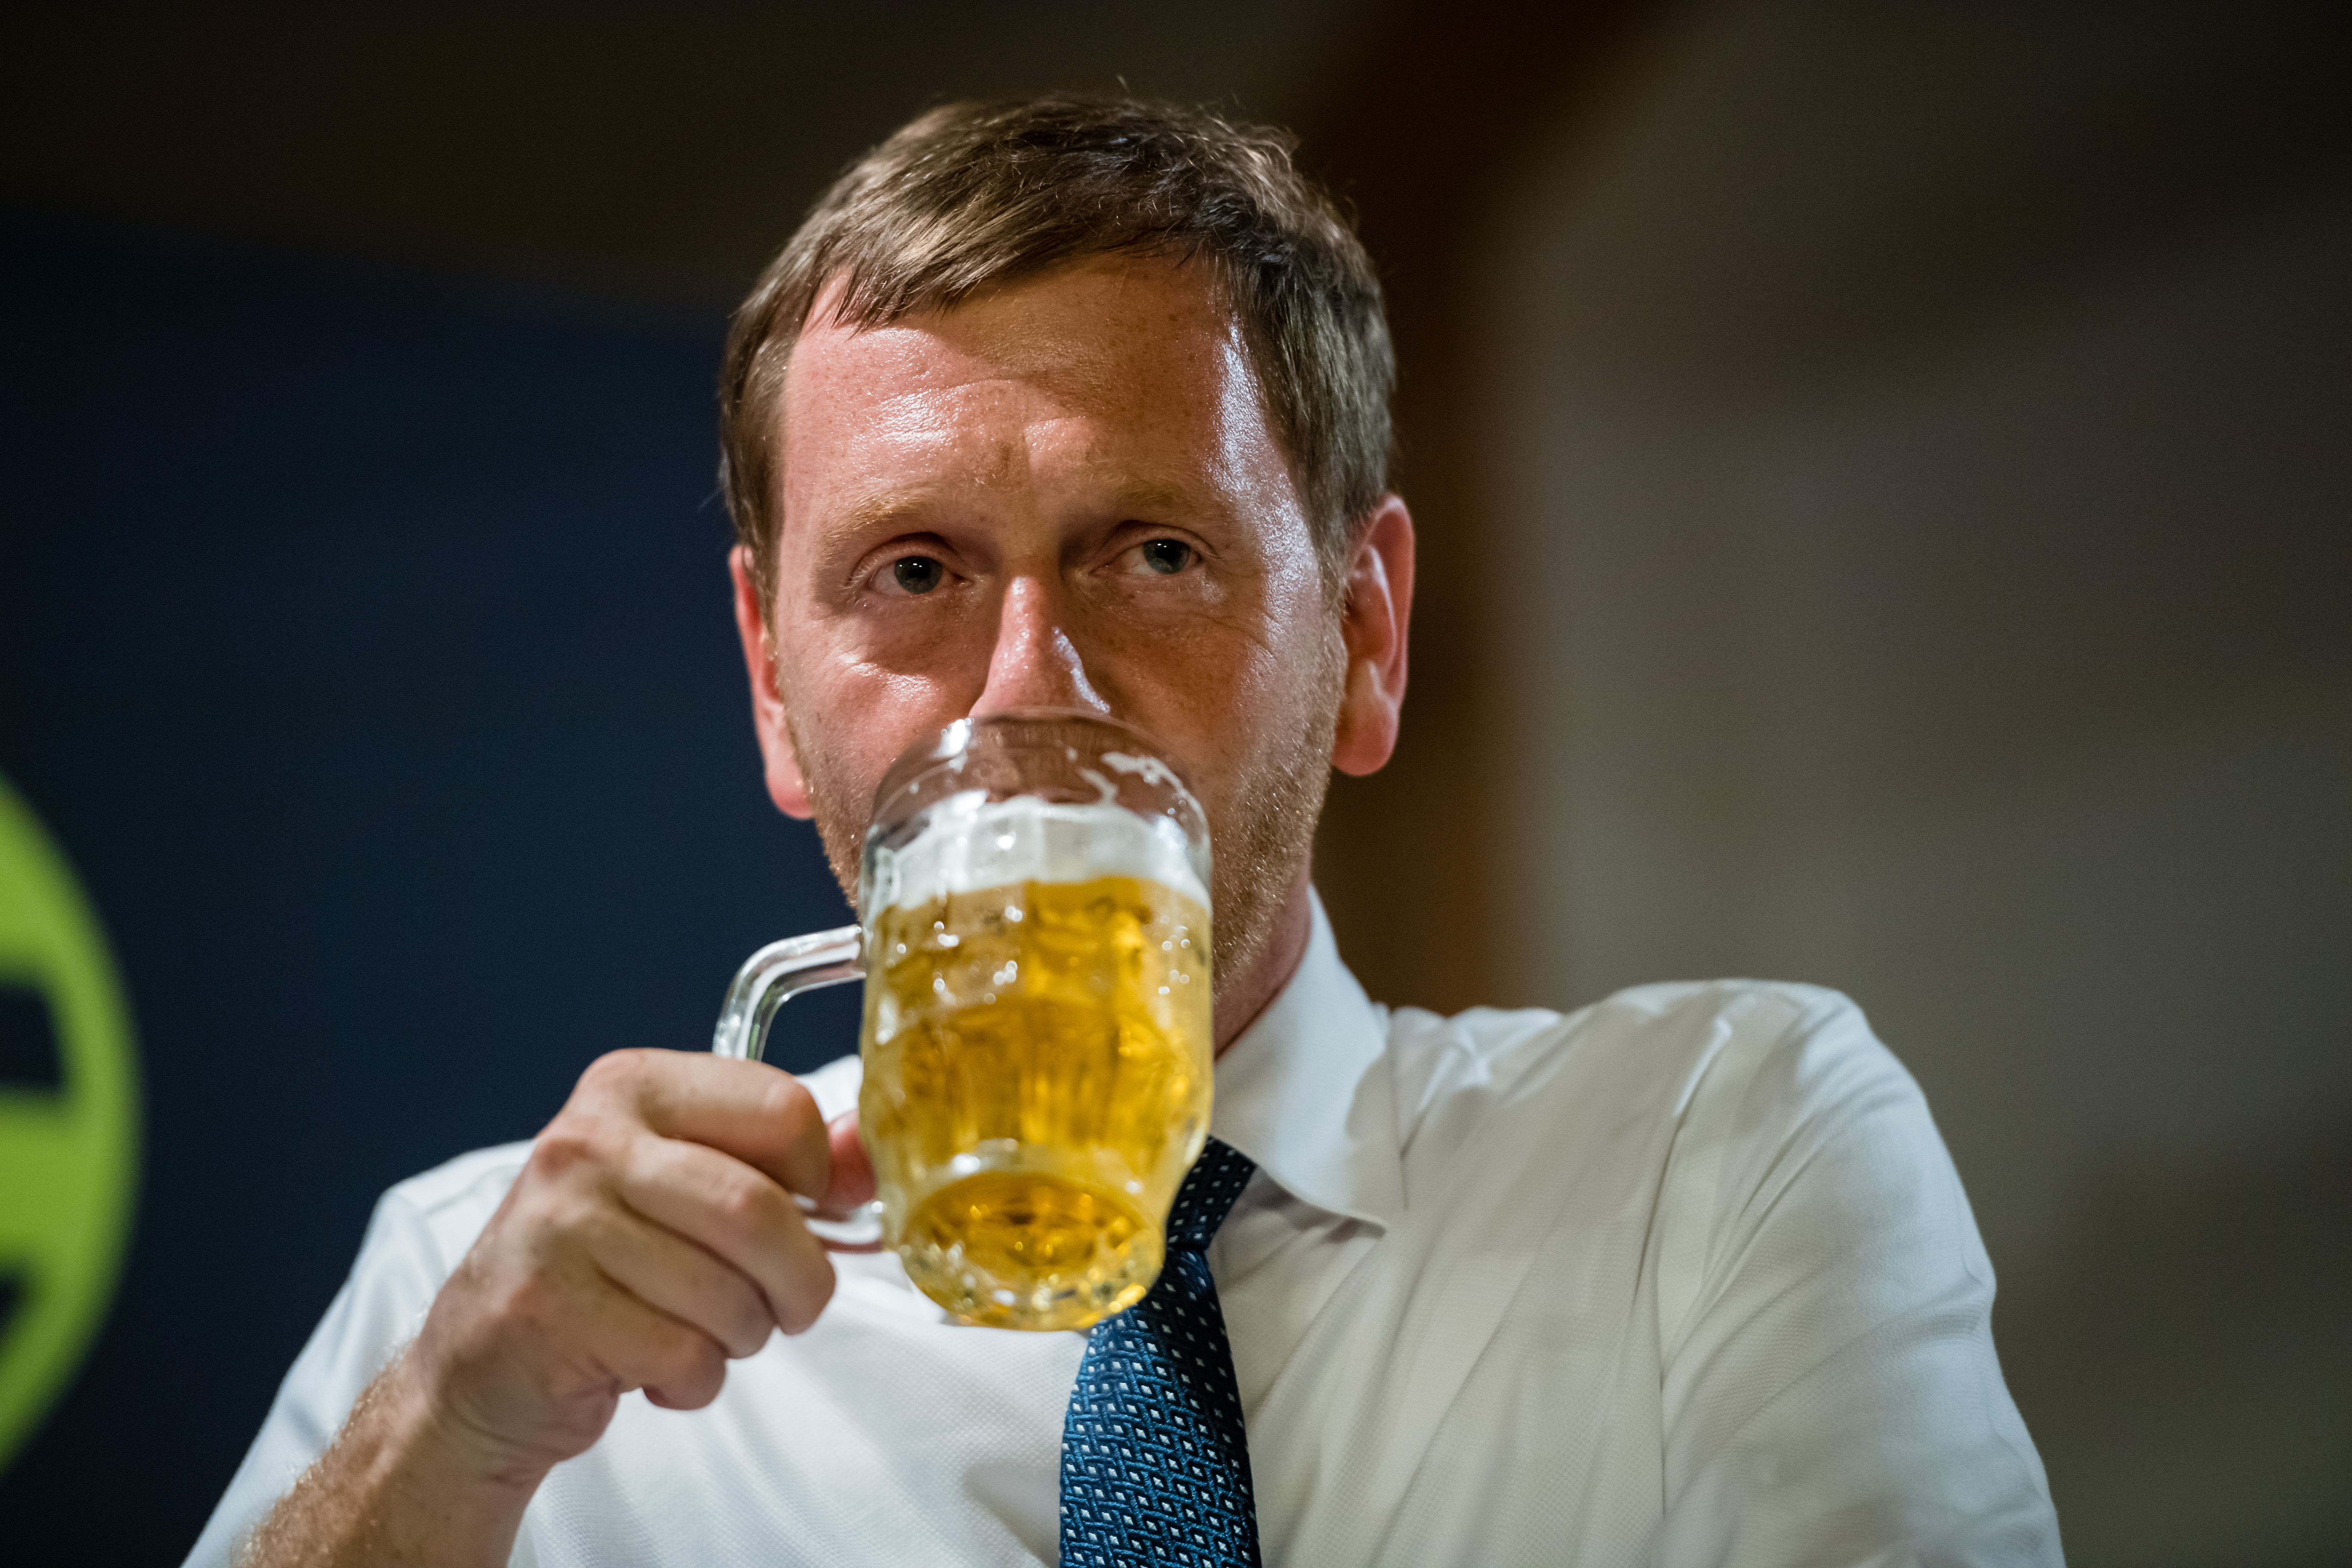 Saxony Governor Kretschmer Campaigns In State Elections